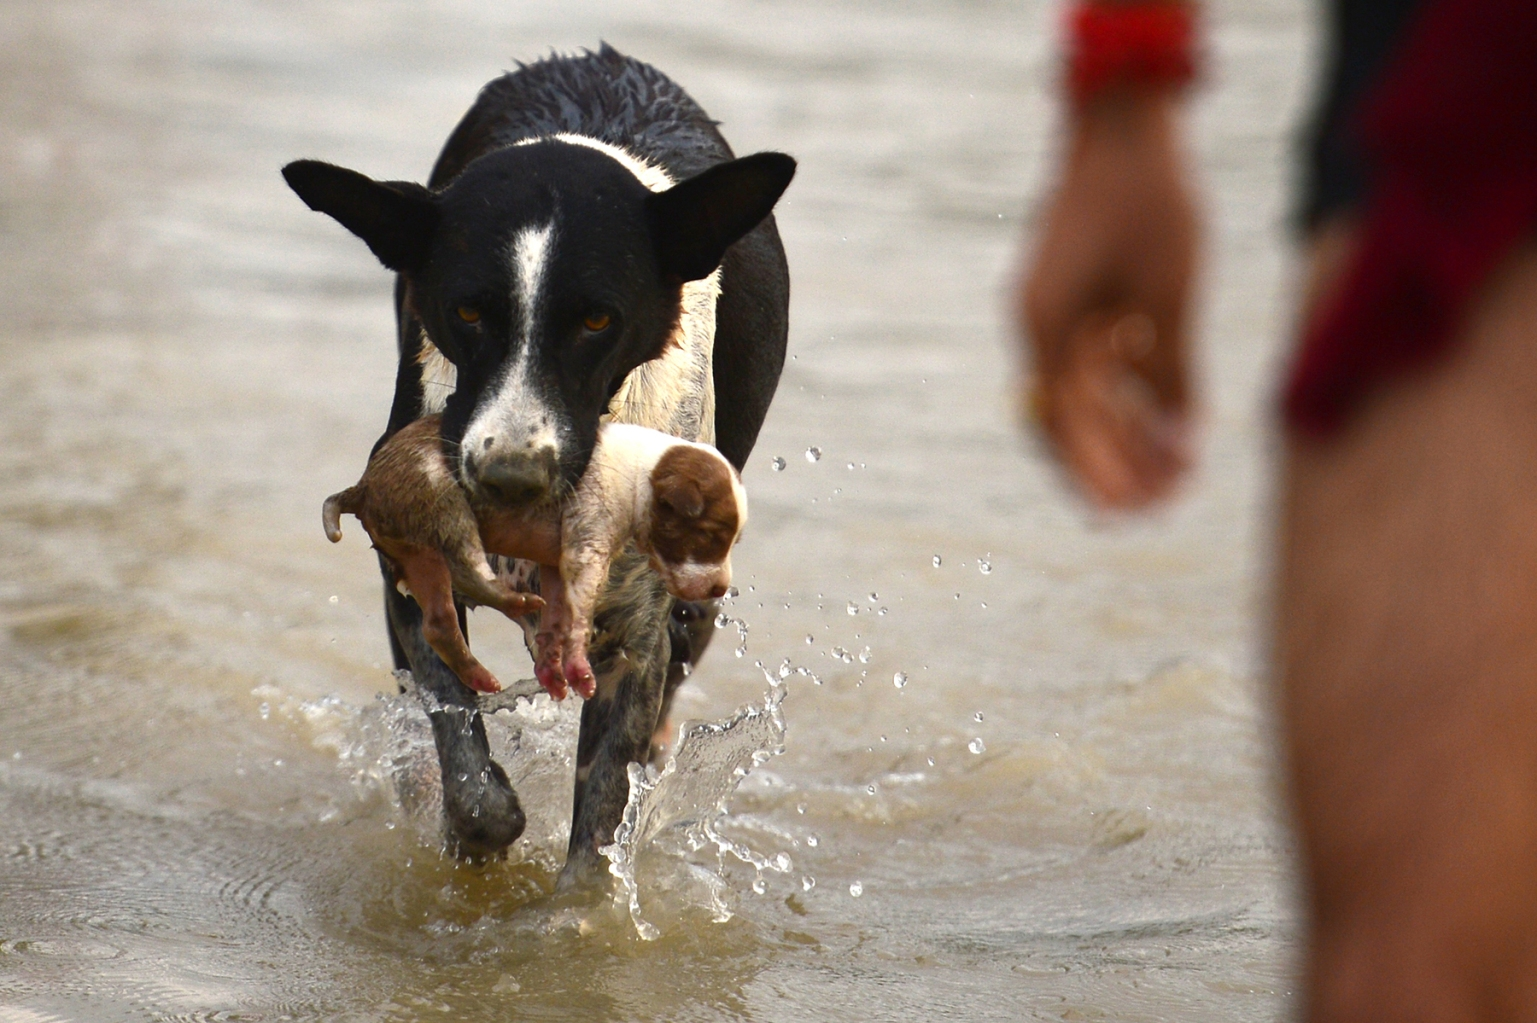 A dog transfers a puppy to drier ground as water levels of the Ganges and Yamuna rivers rise following monsoon rains in Allahabad, India, on Sept. 3. SANJAY KANOJIA/AFP/Getty Images